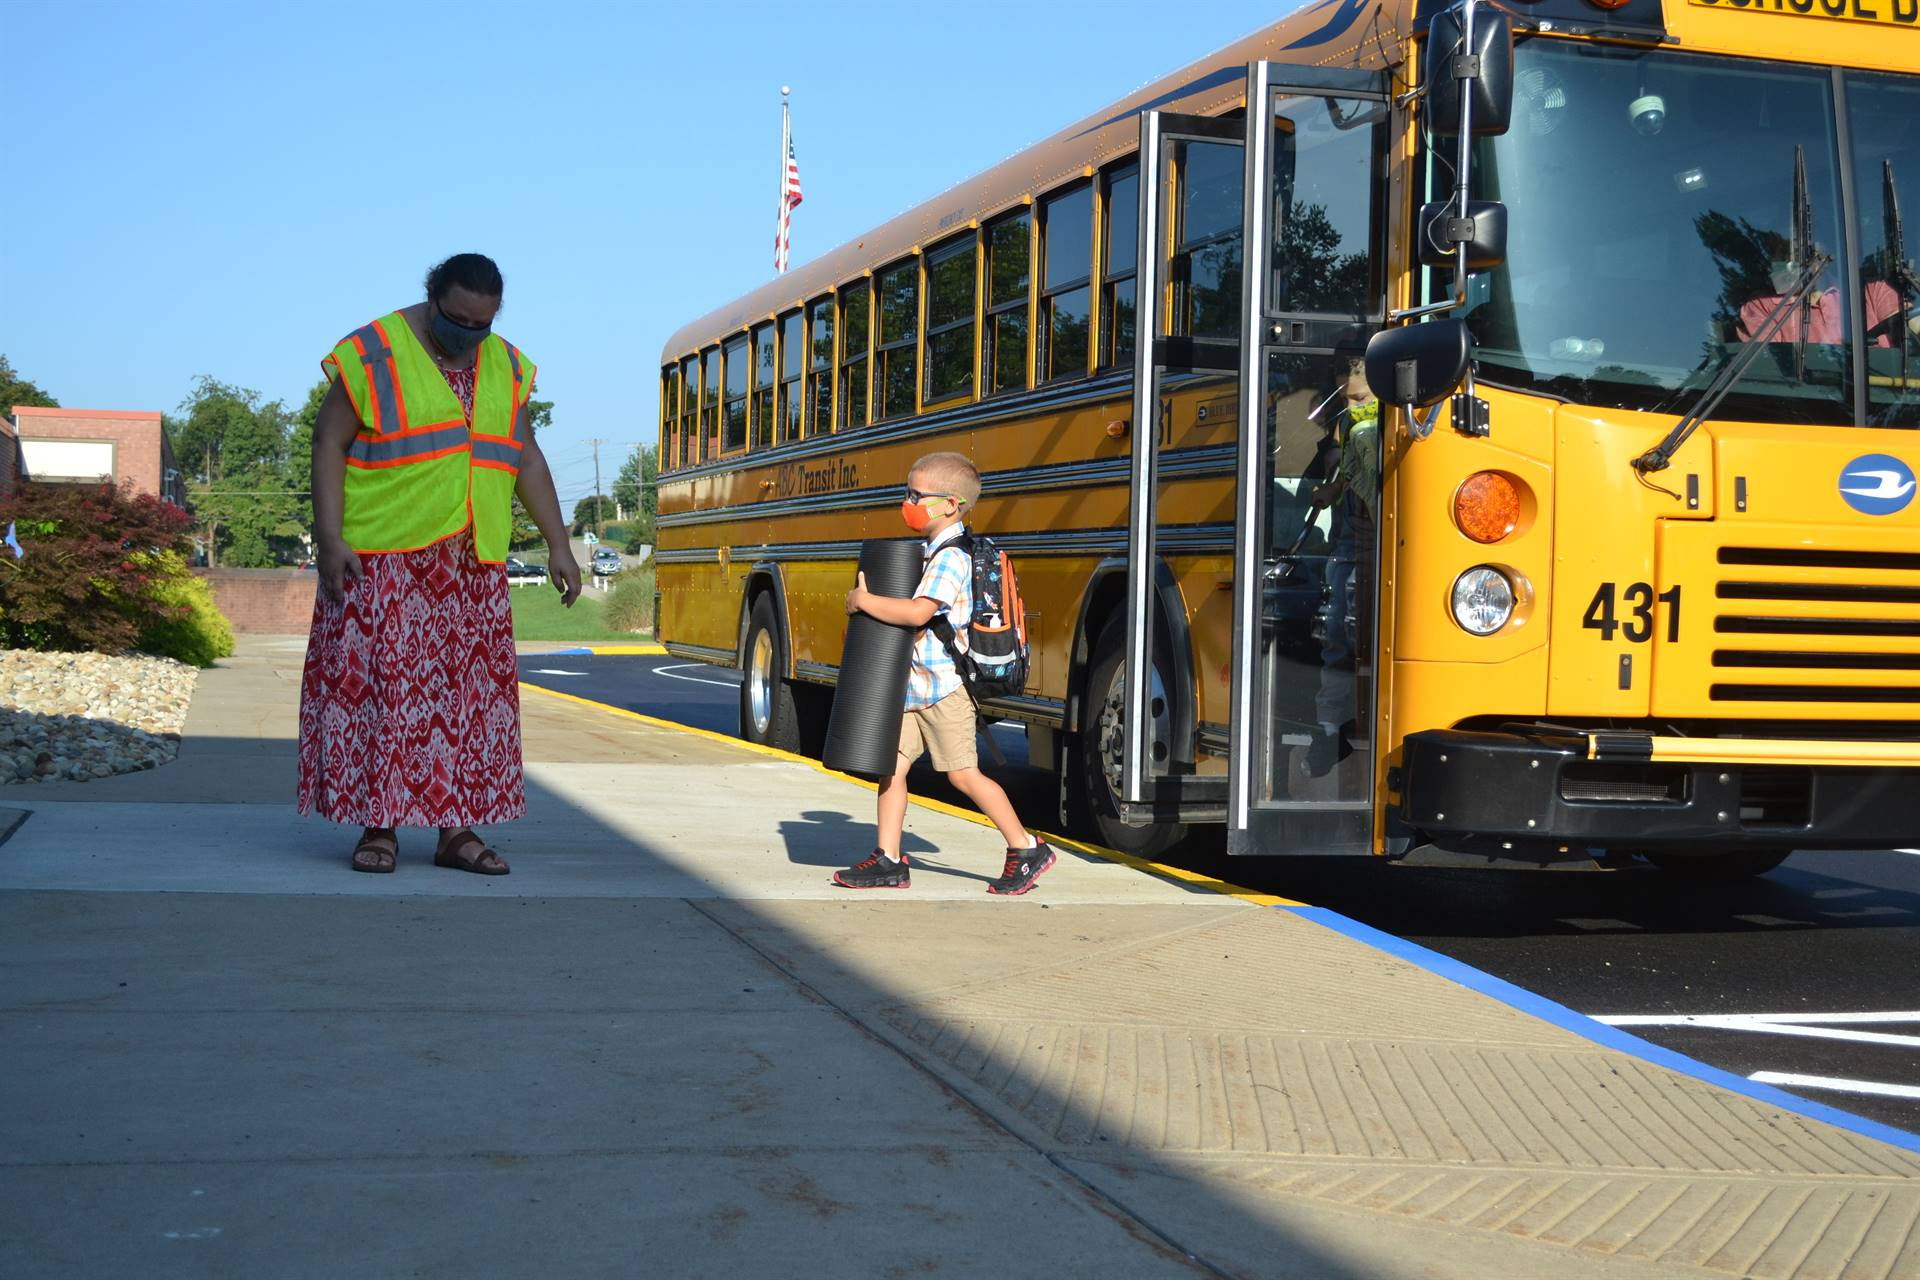 students arriving on the bus, first day of school